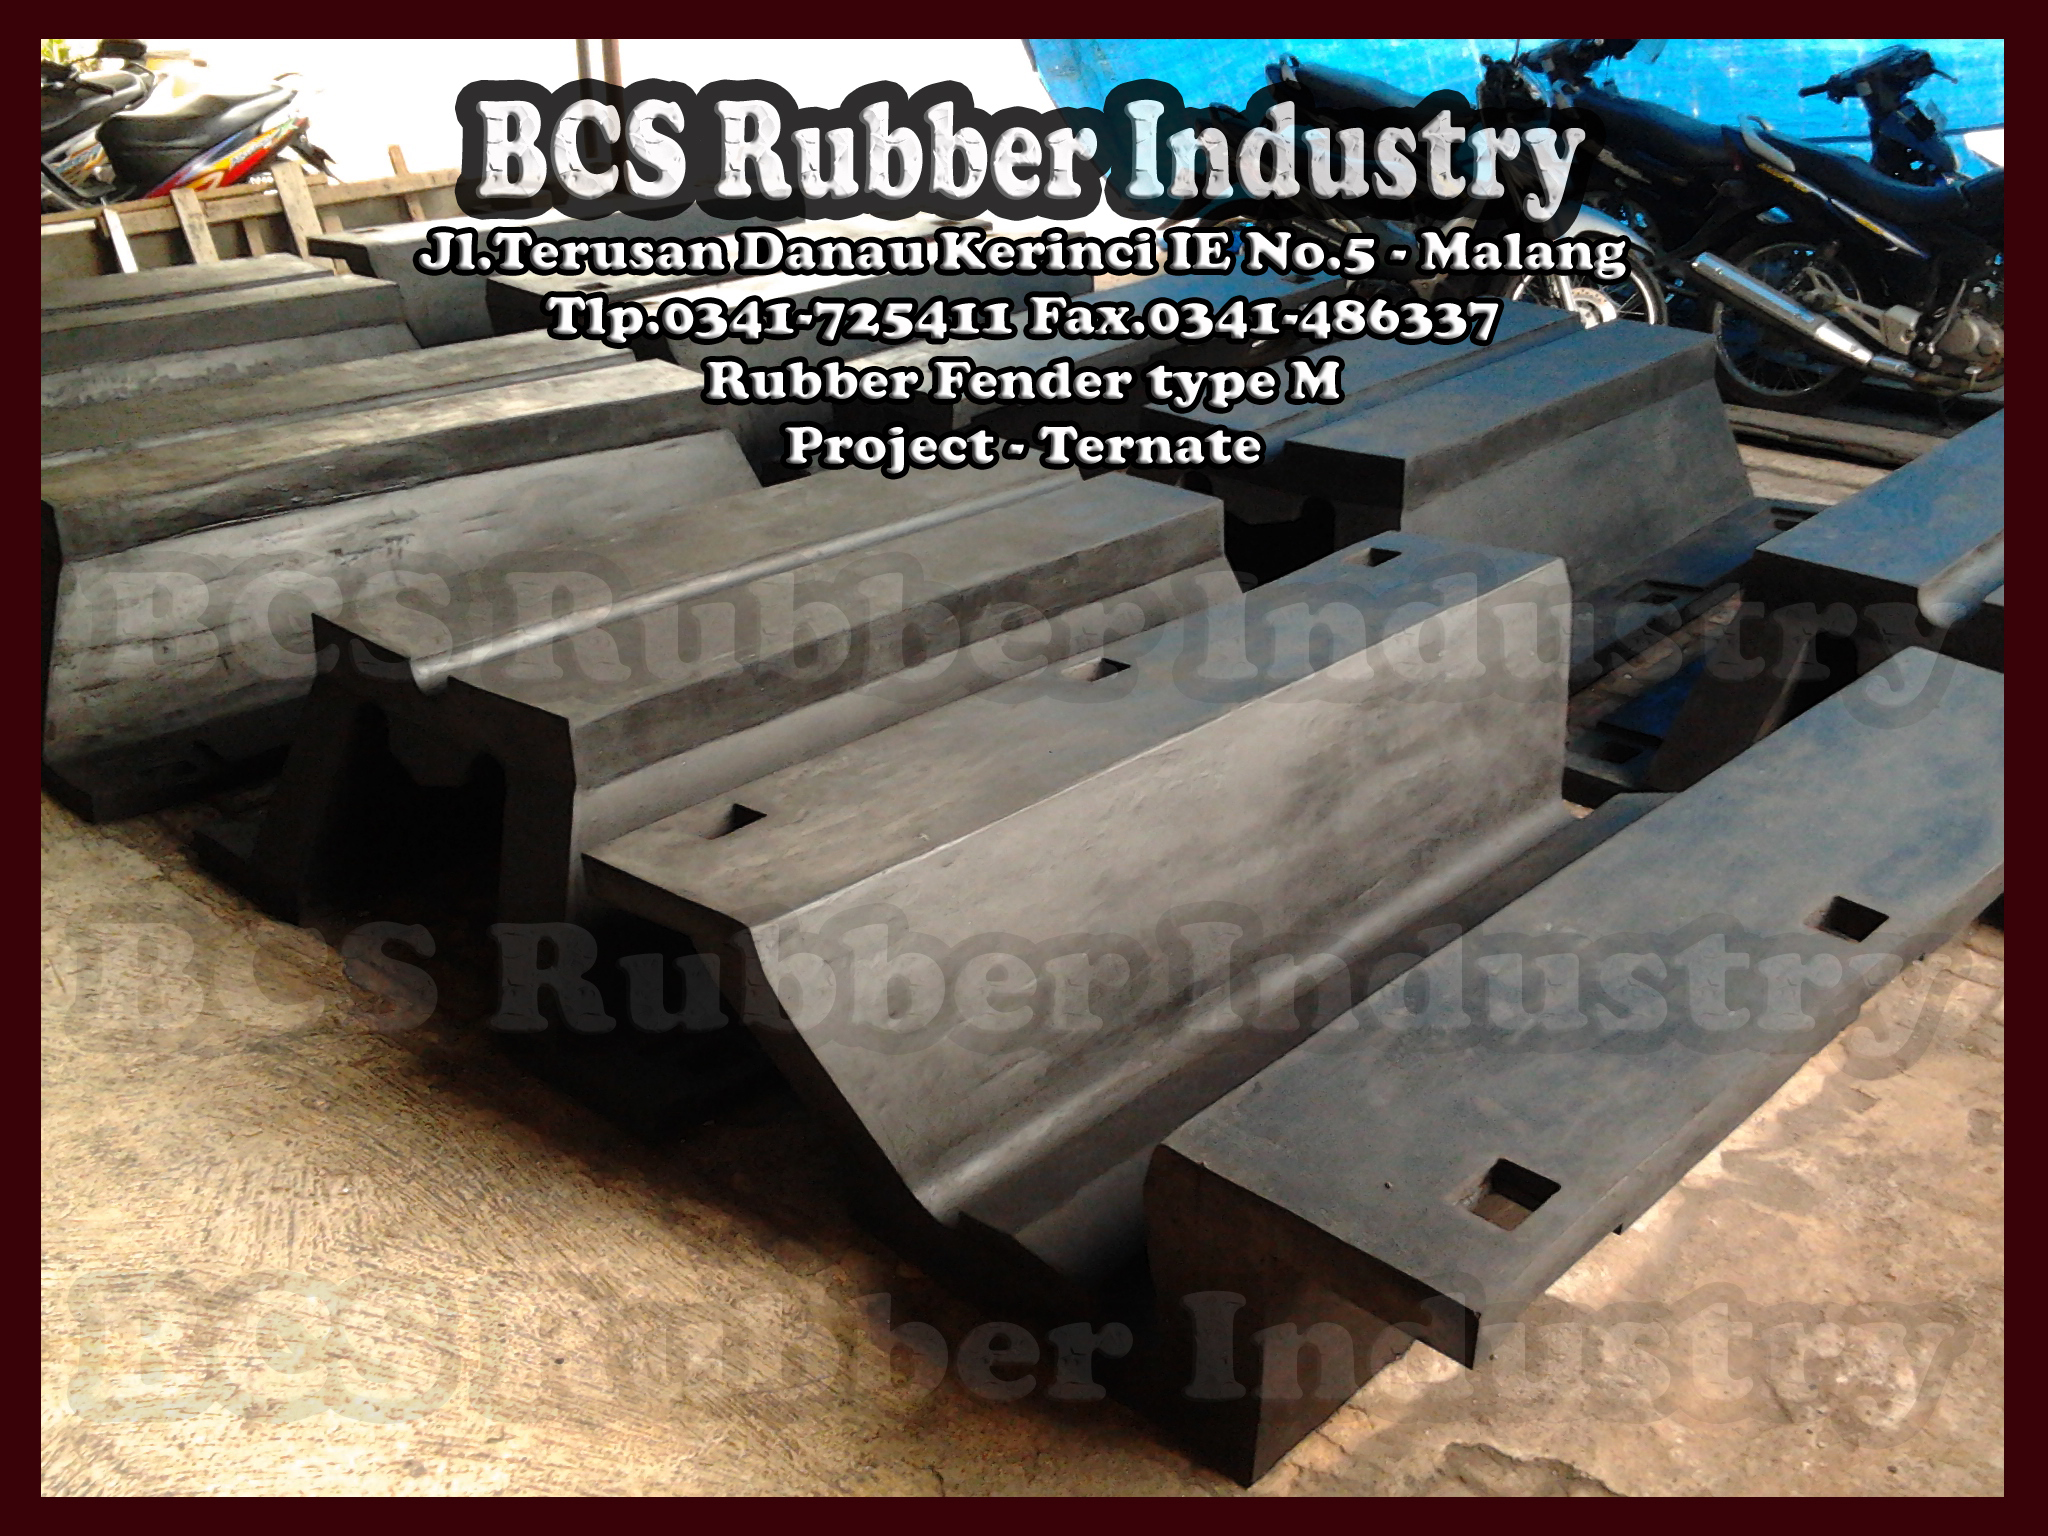 Rubber Fender Type M